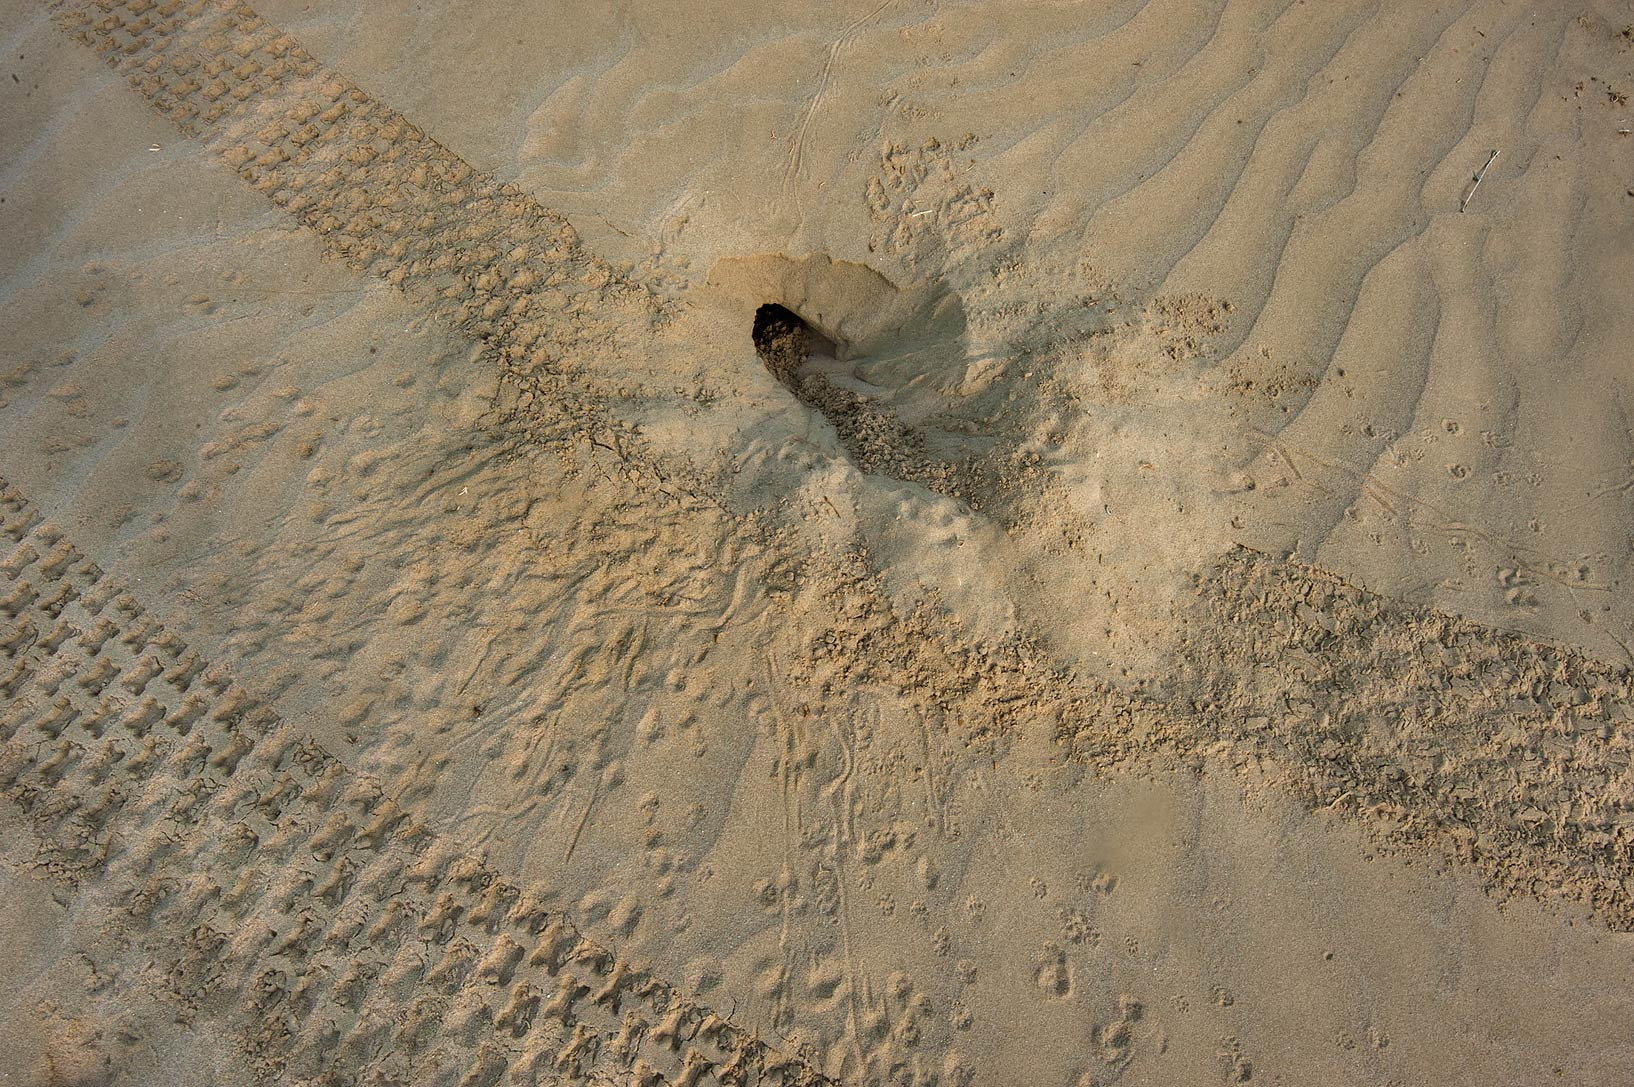 Lizard's burrow in sand near Mesaieed, near Sealine Beach Resort. Southern Qatar